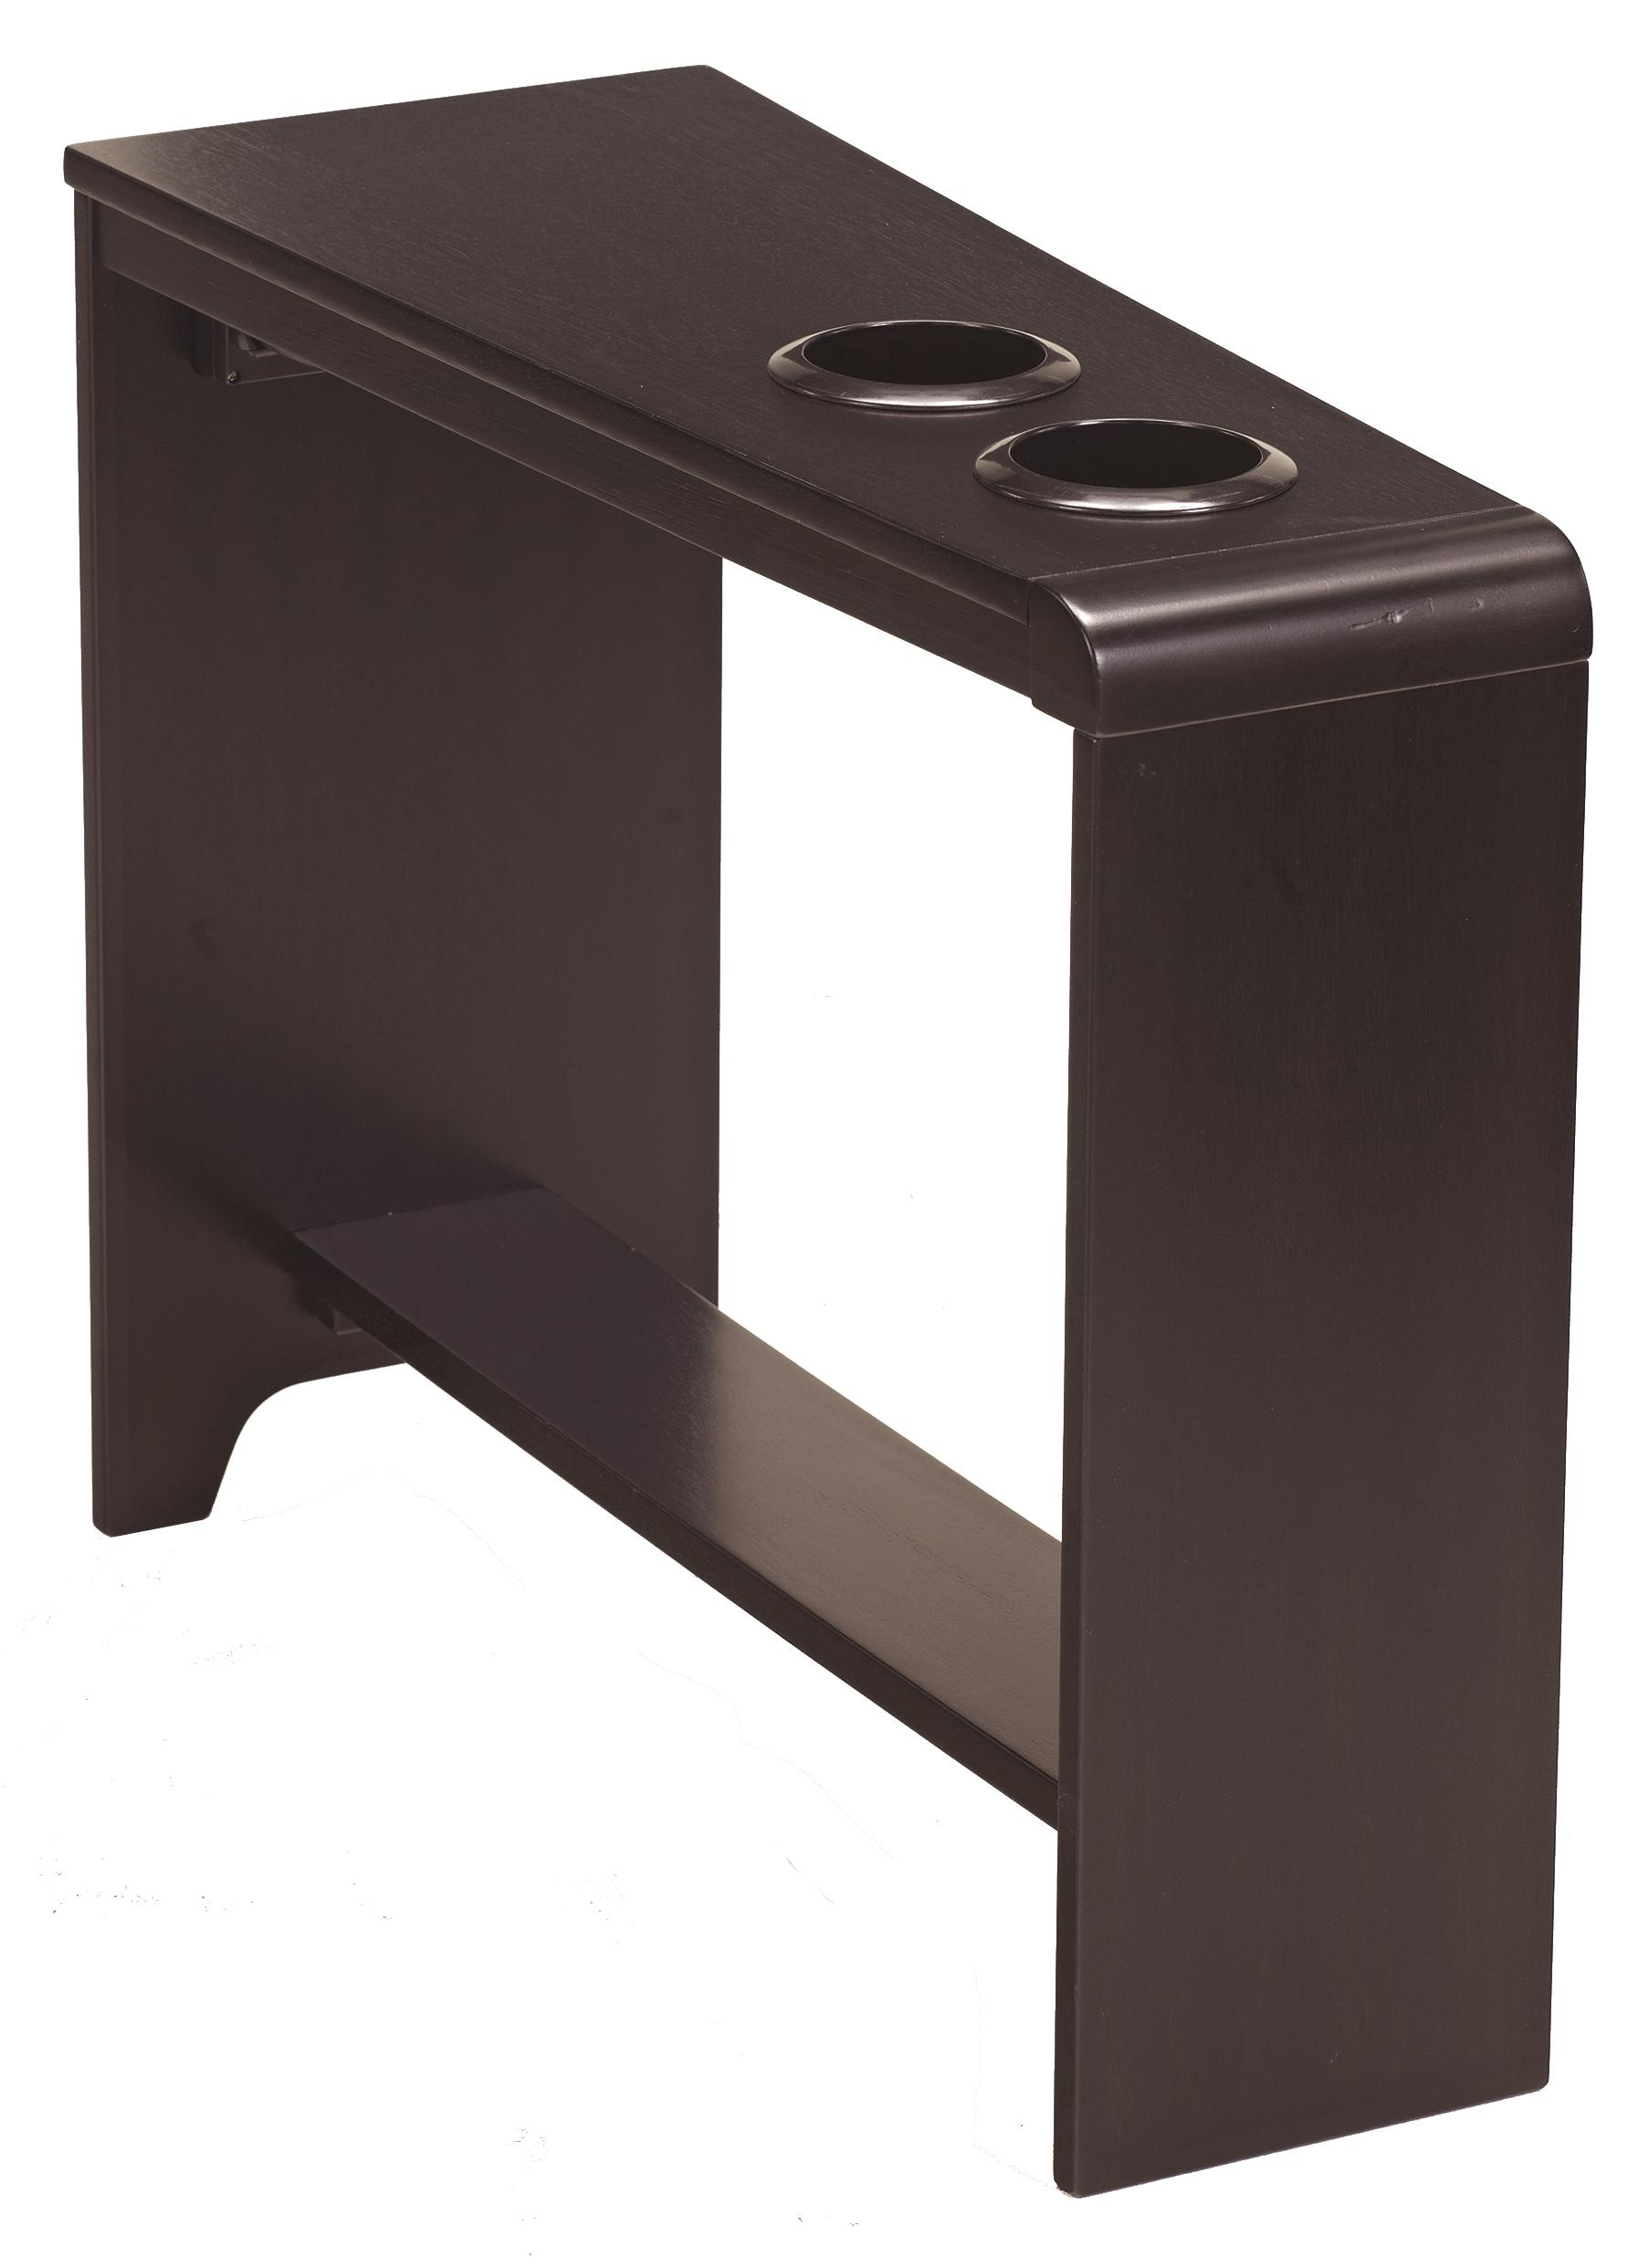 Chair Side End Table with 2 Cup Holders Powerstrip  USB